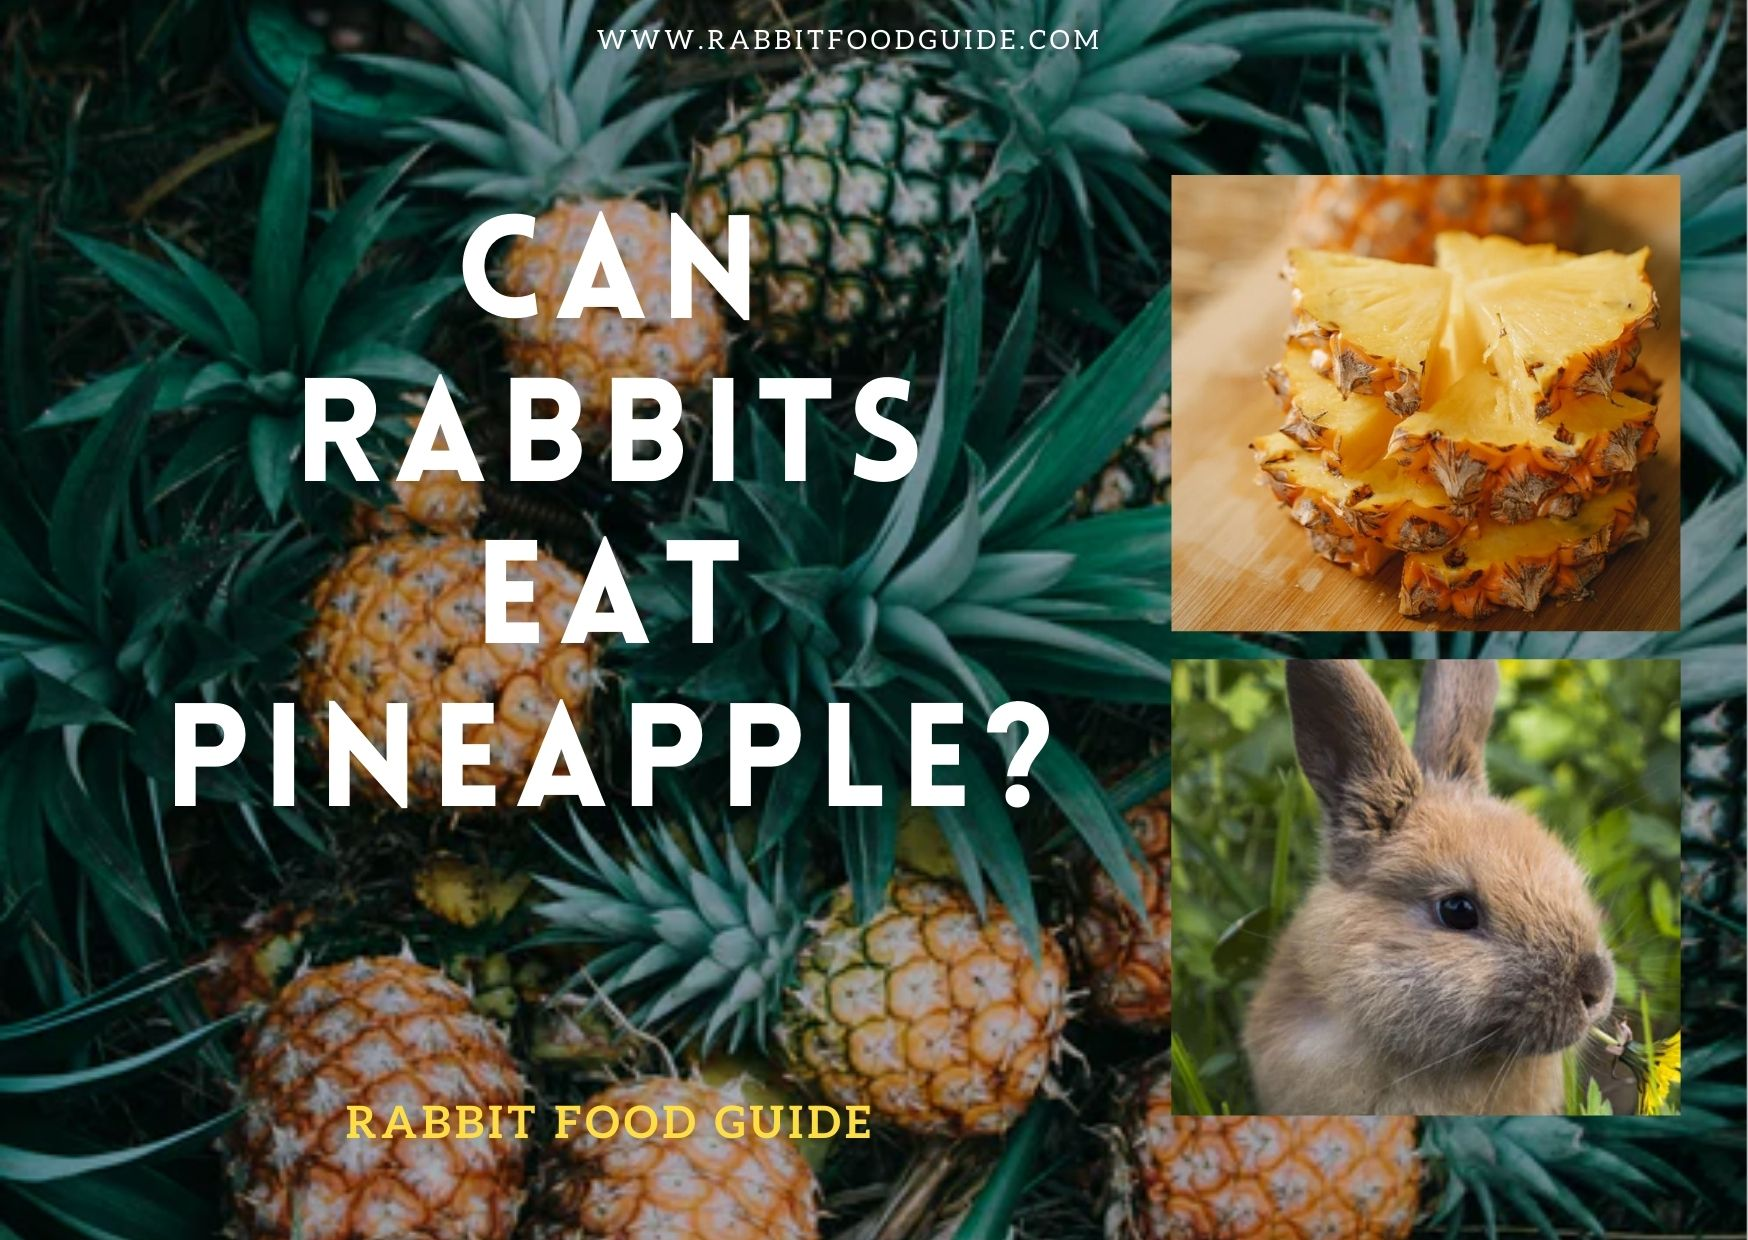 Can Rabbits Eat Pineapple Benefits, Issues & Extra Preparation Guide